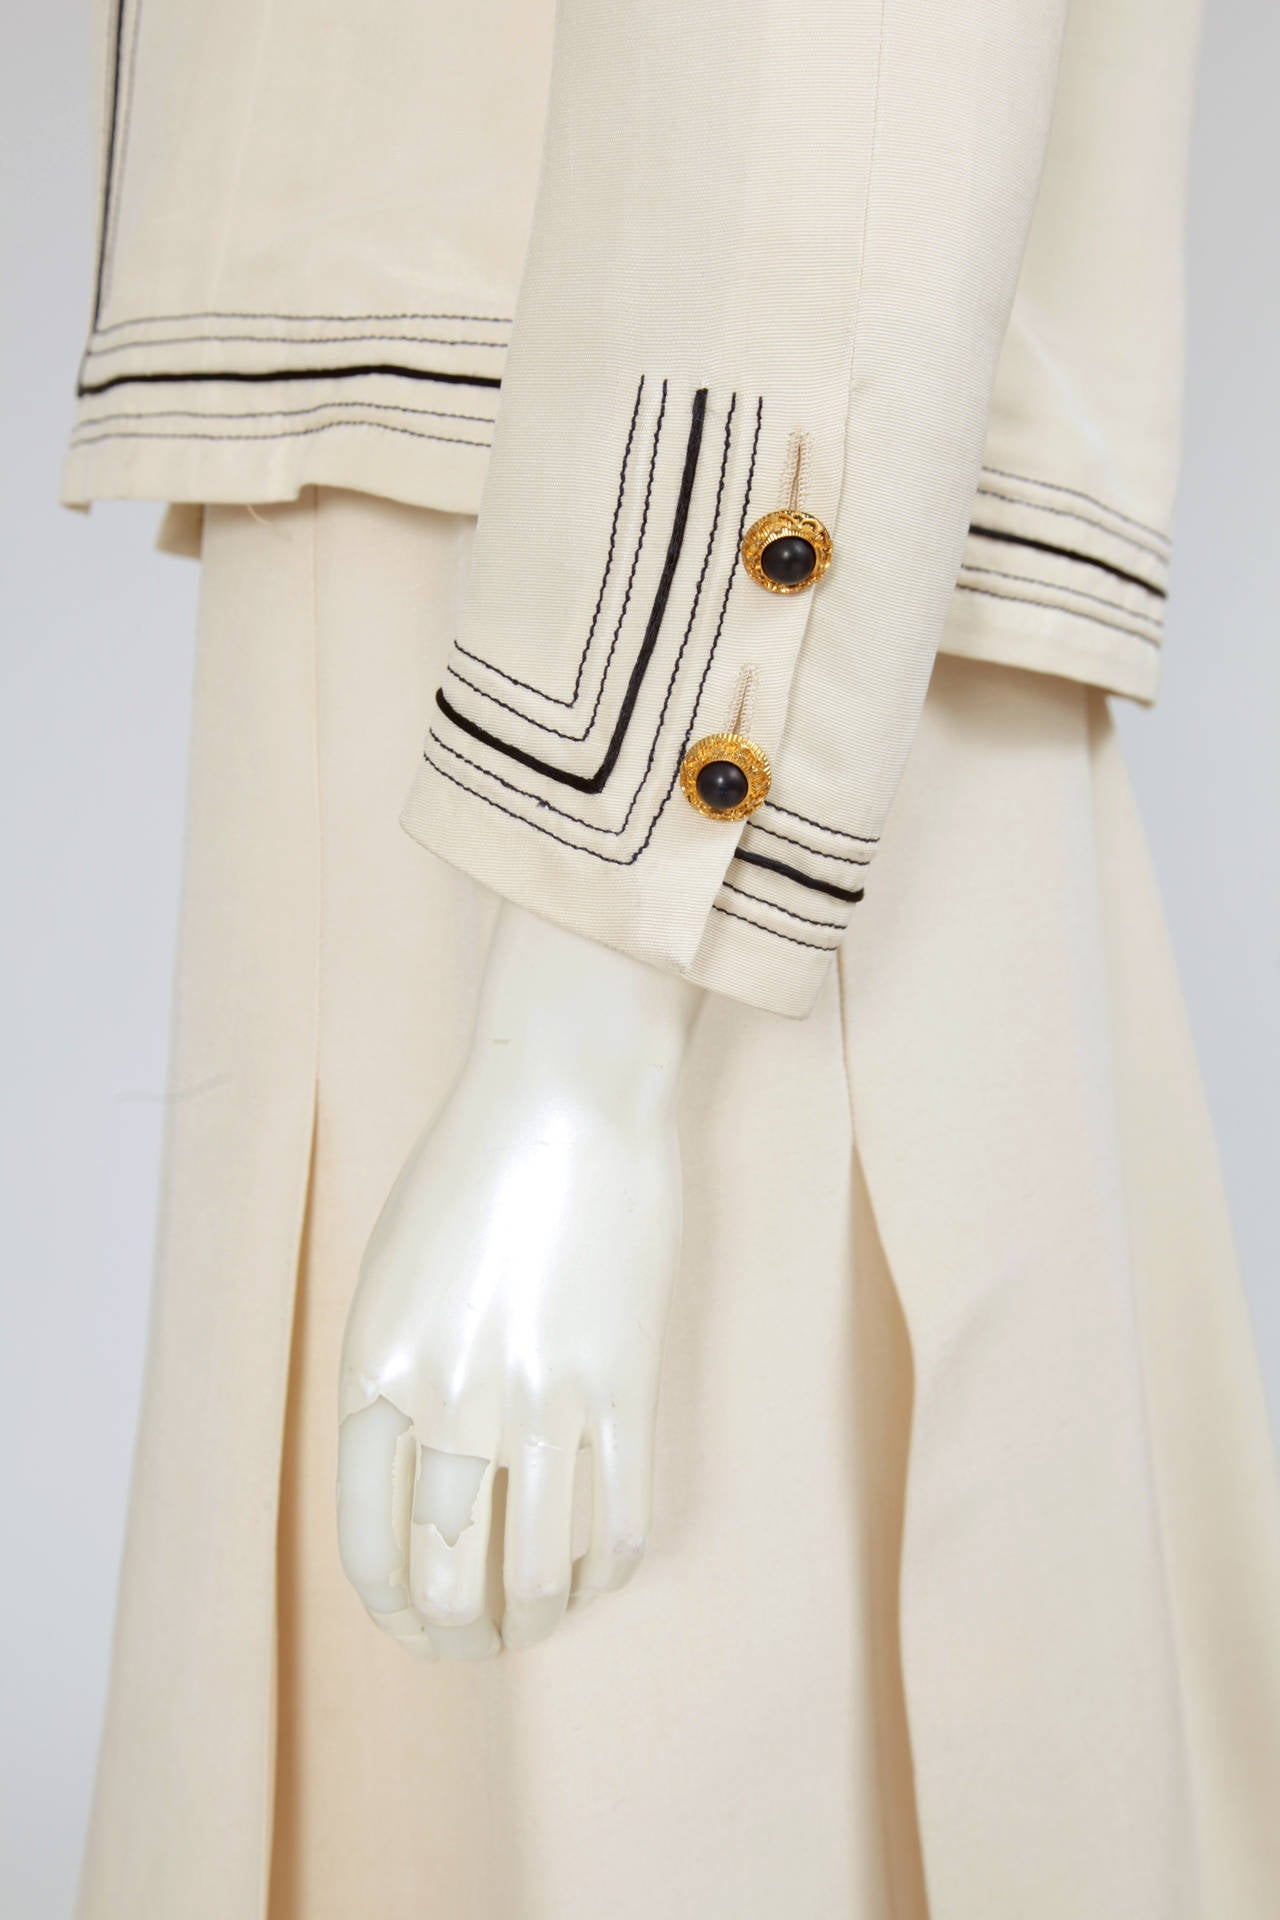 Women's Gabrielle Chanel Haute Couture Three Piece Skirt Suit, Circa 1968-1970 For Sale